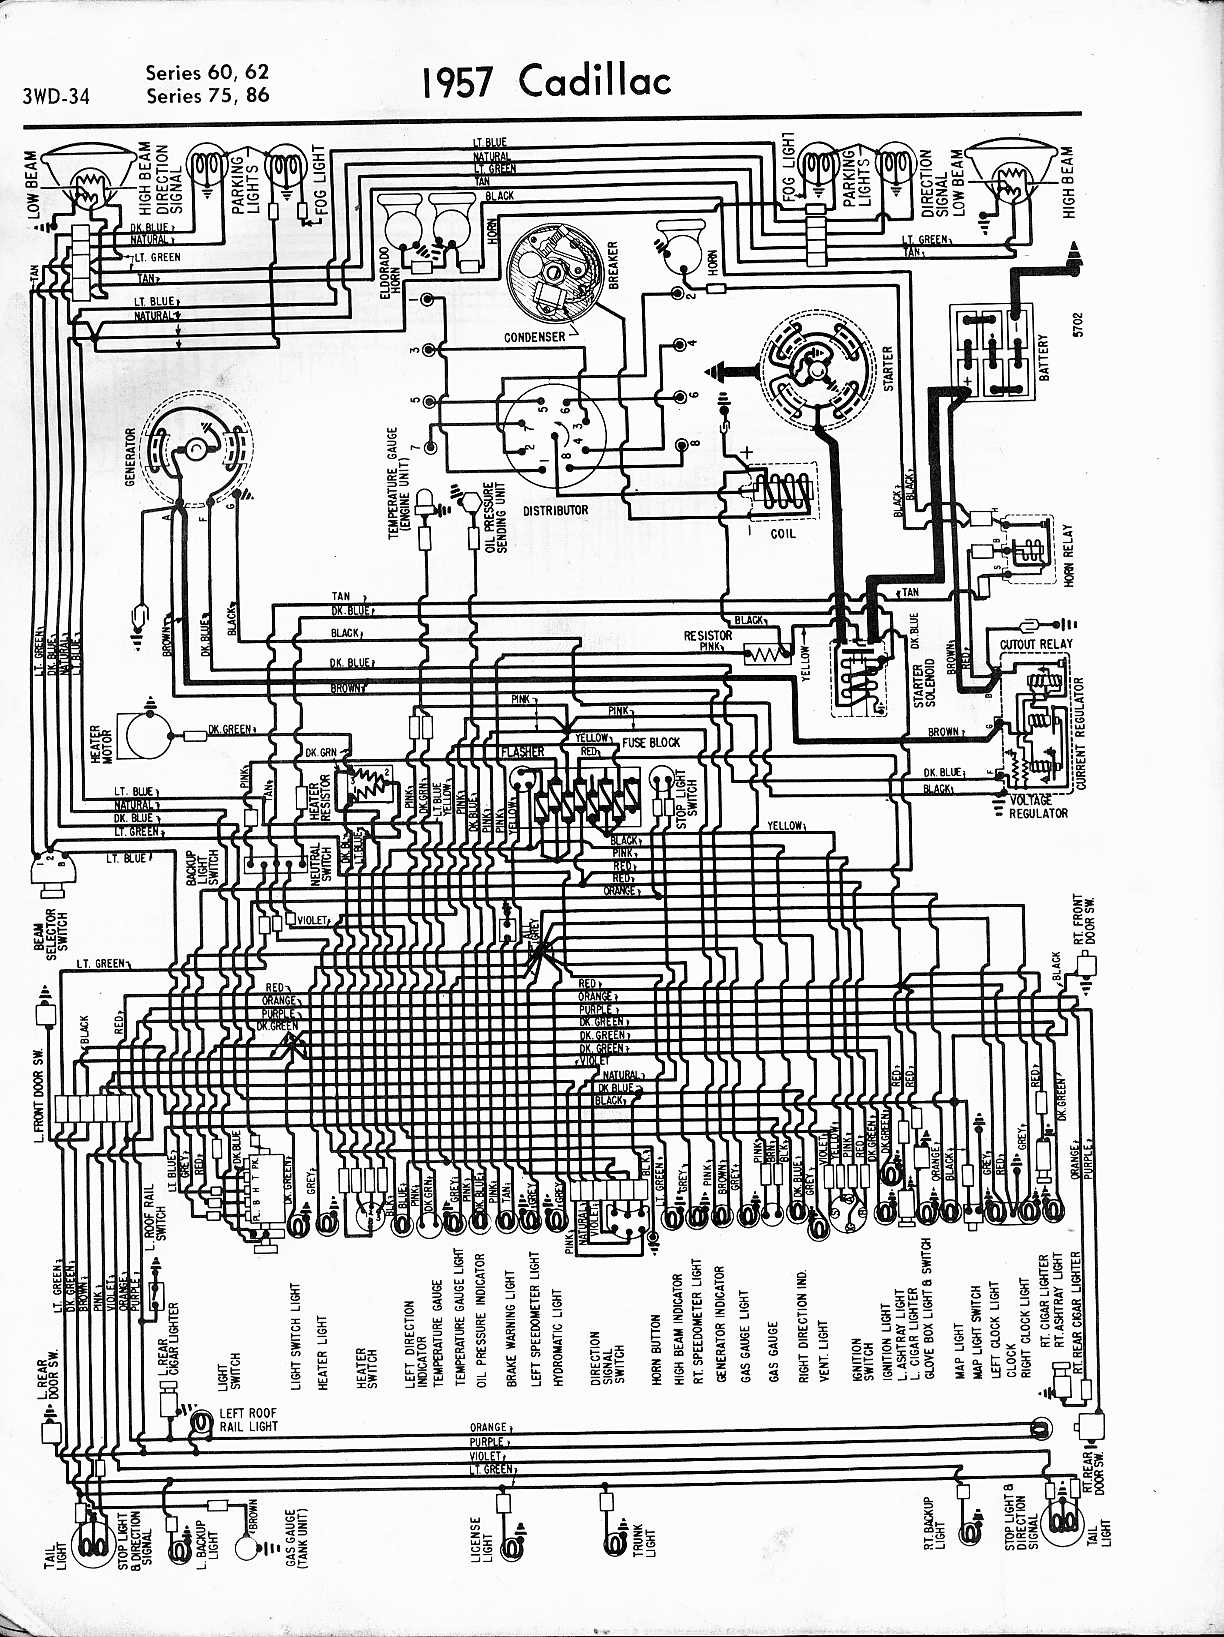 Vintage Ads Fuse Box Auto Electrical Wiring Diagram Toyota Engine P062dno1 Cadillac Diagrams 1957